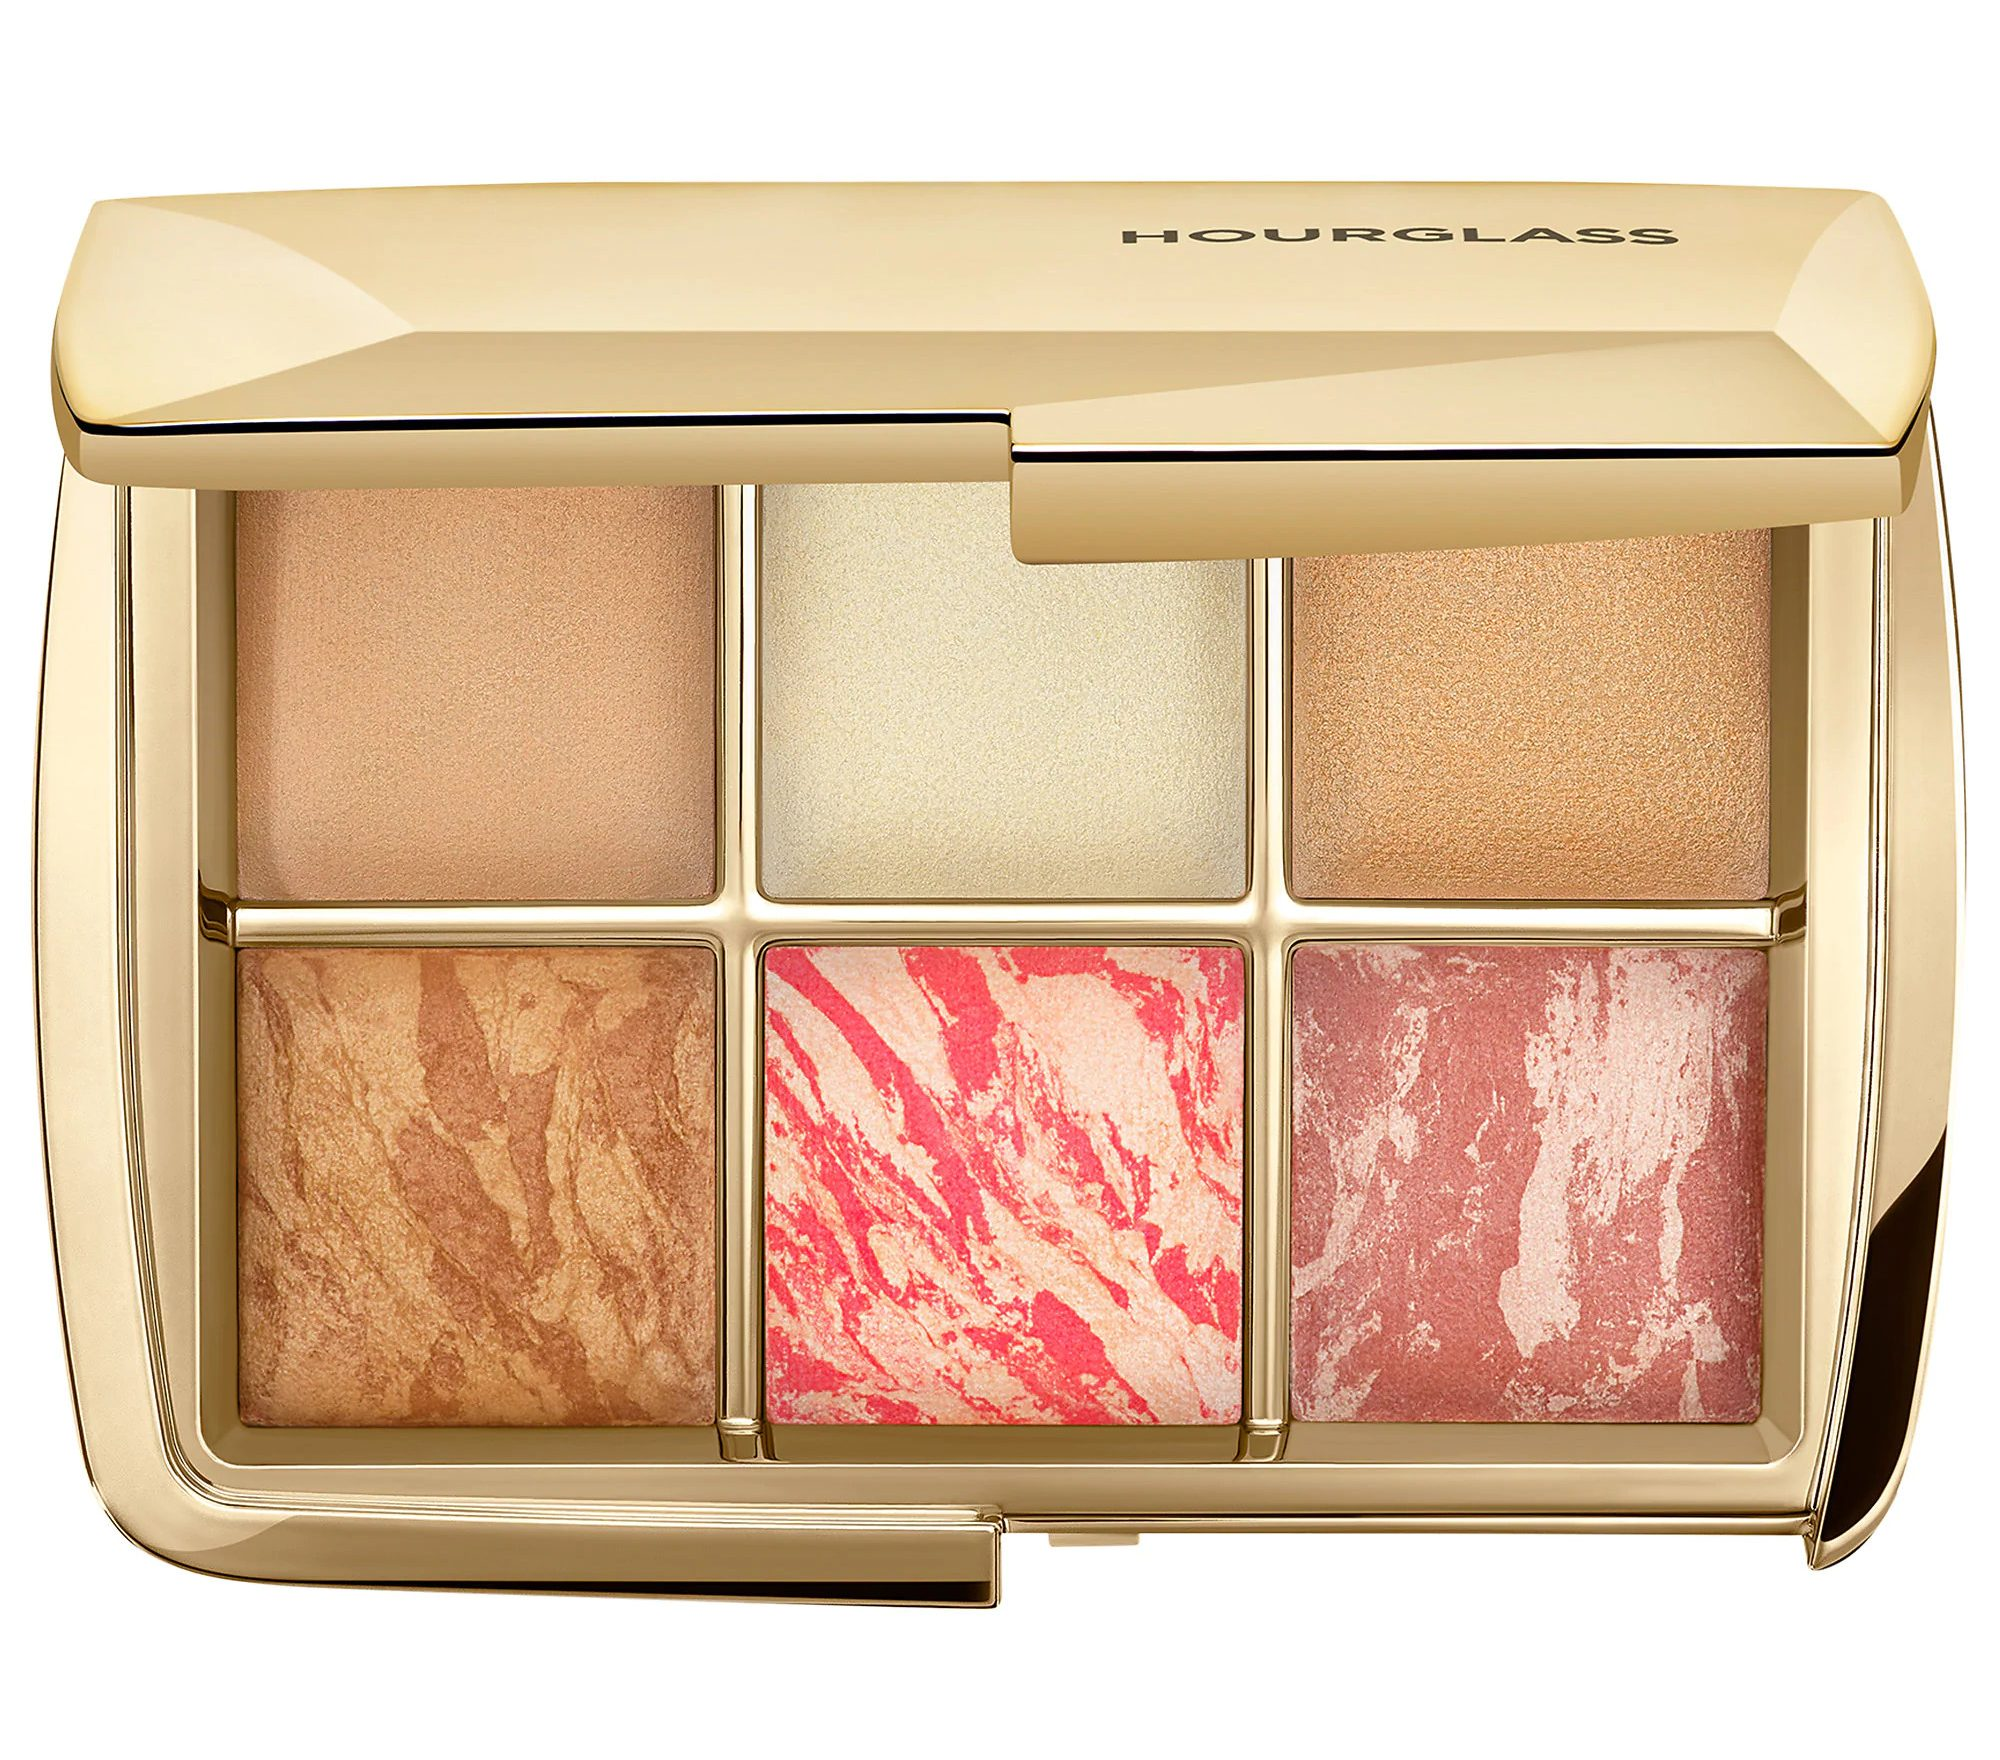 Hourglass-Palette